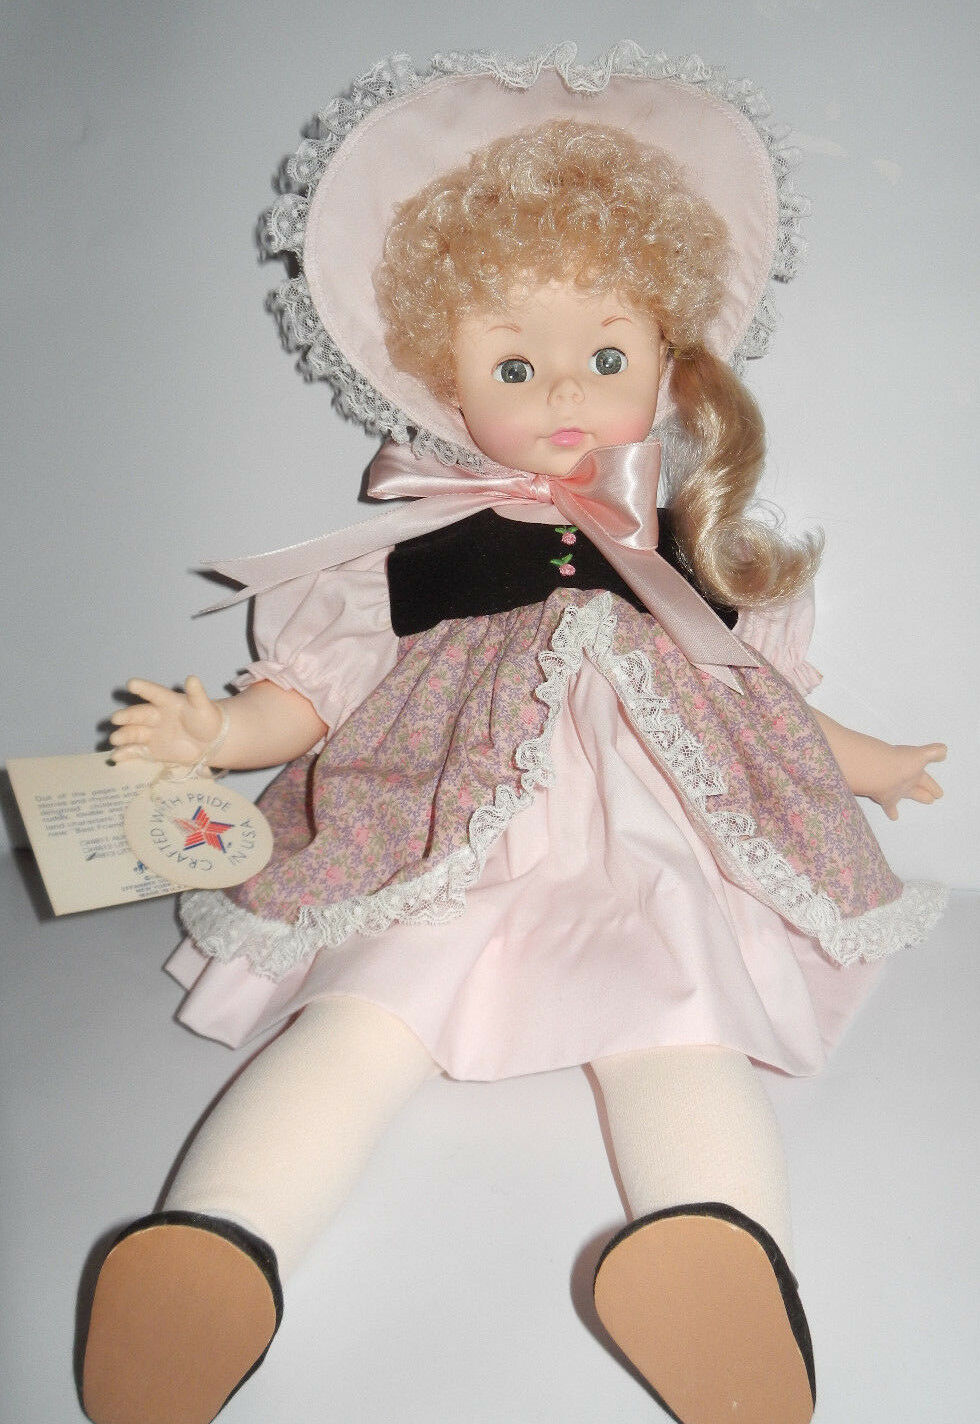 Effenbee collection Doll 1961  Fantasy Land in original box - Vintage